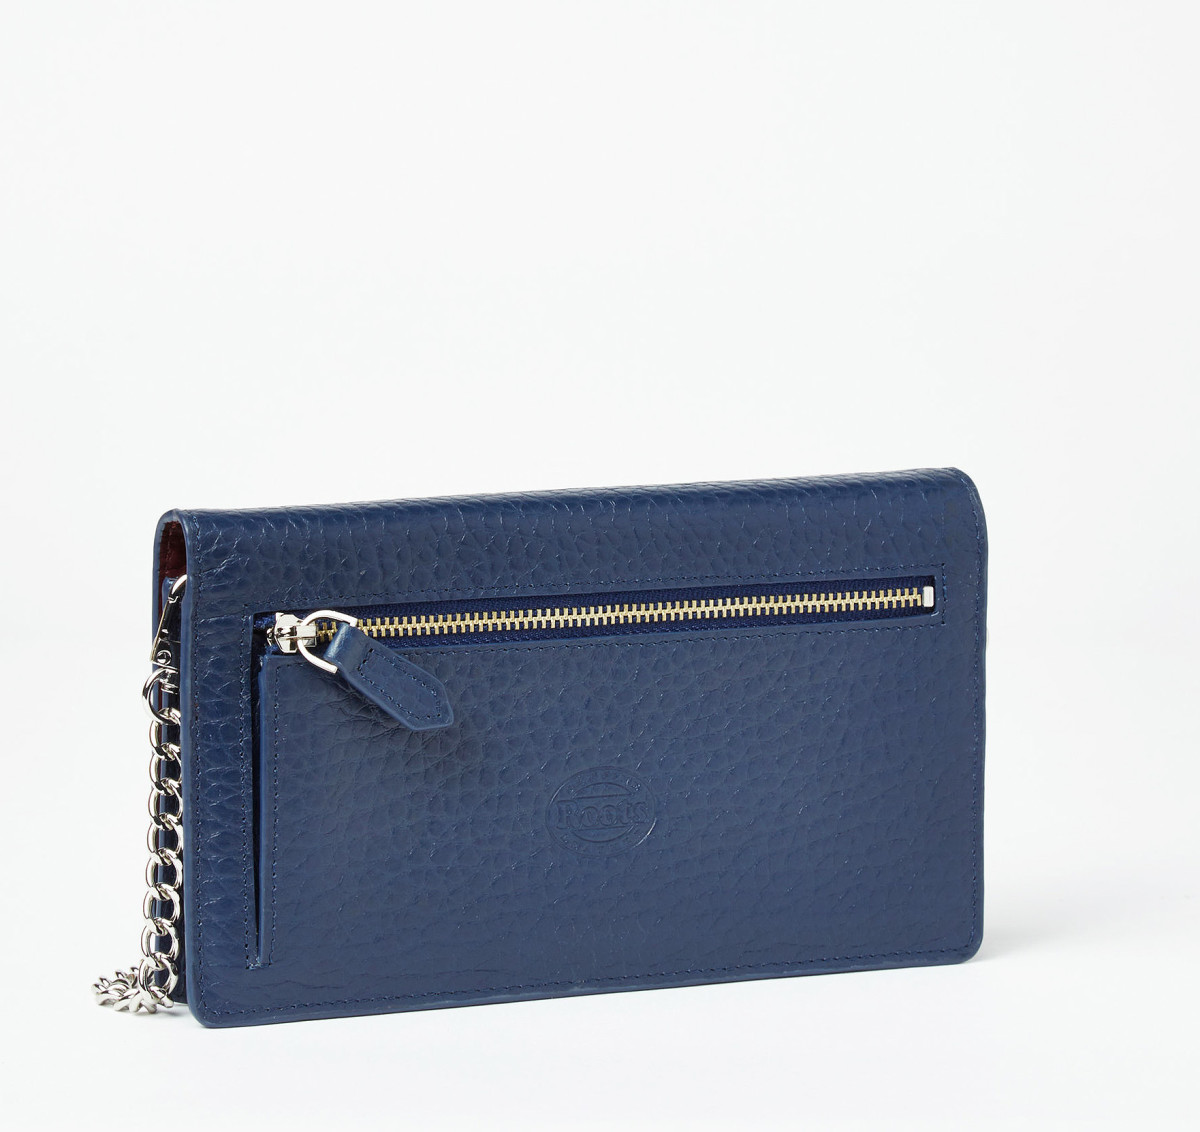 Roots Evening Wallet back zippered pocket